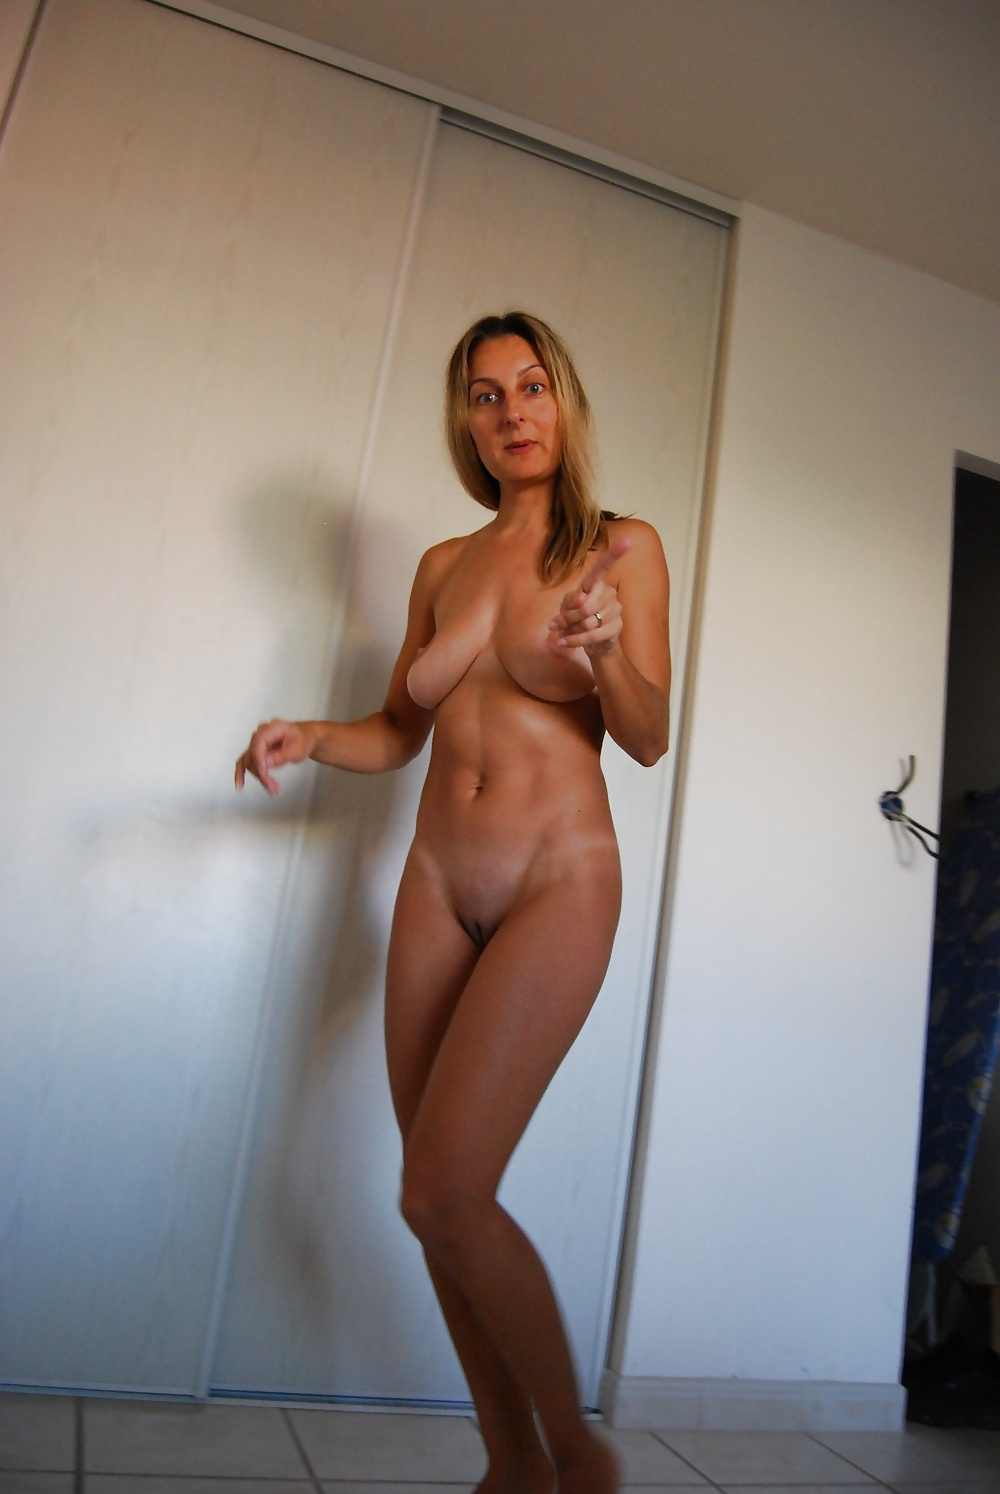 Hot nude blonde photos